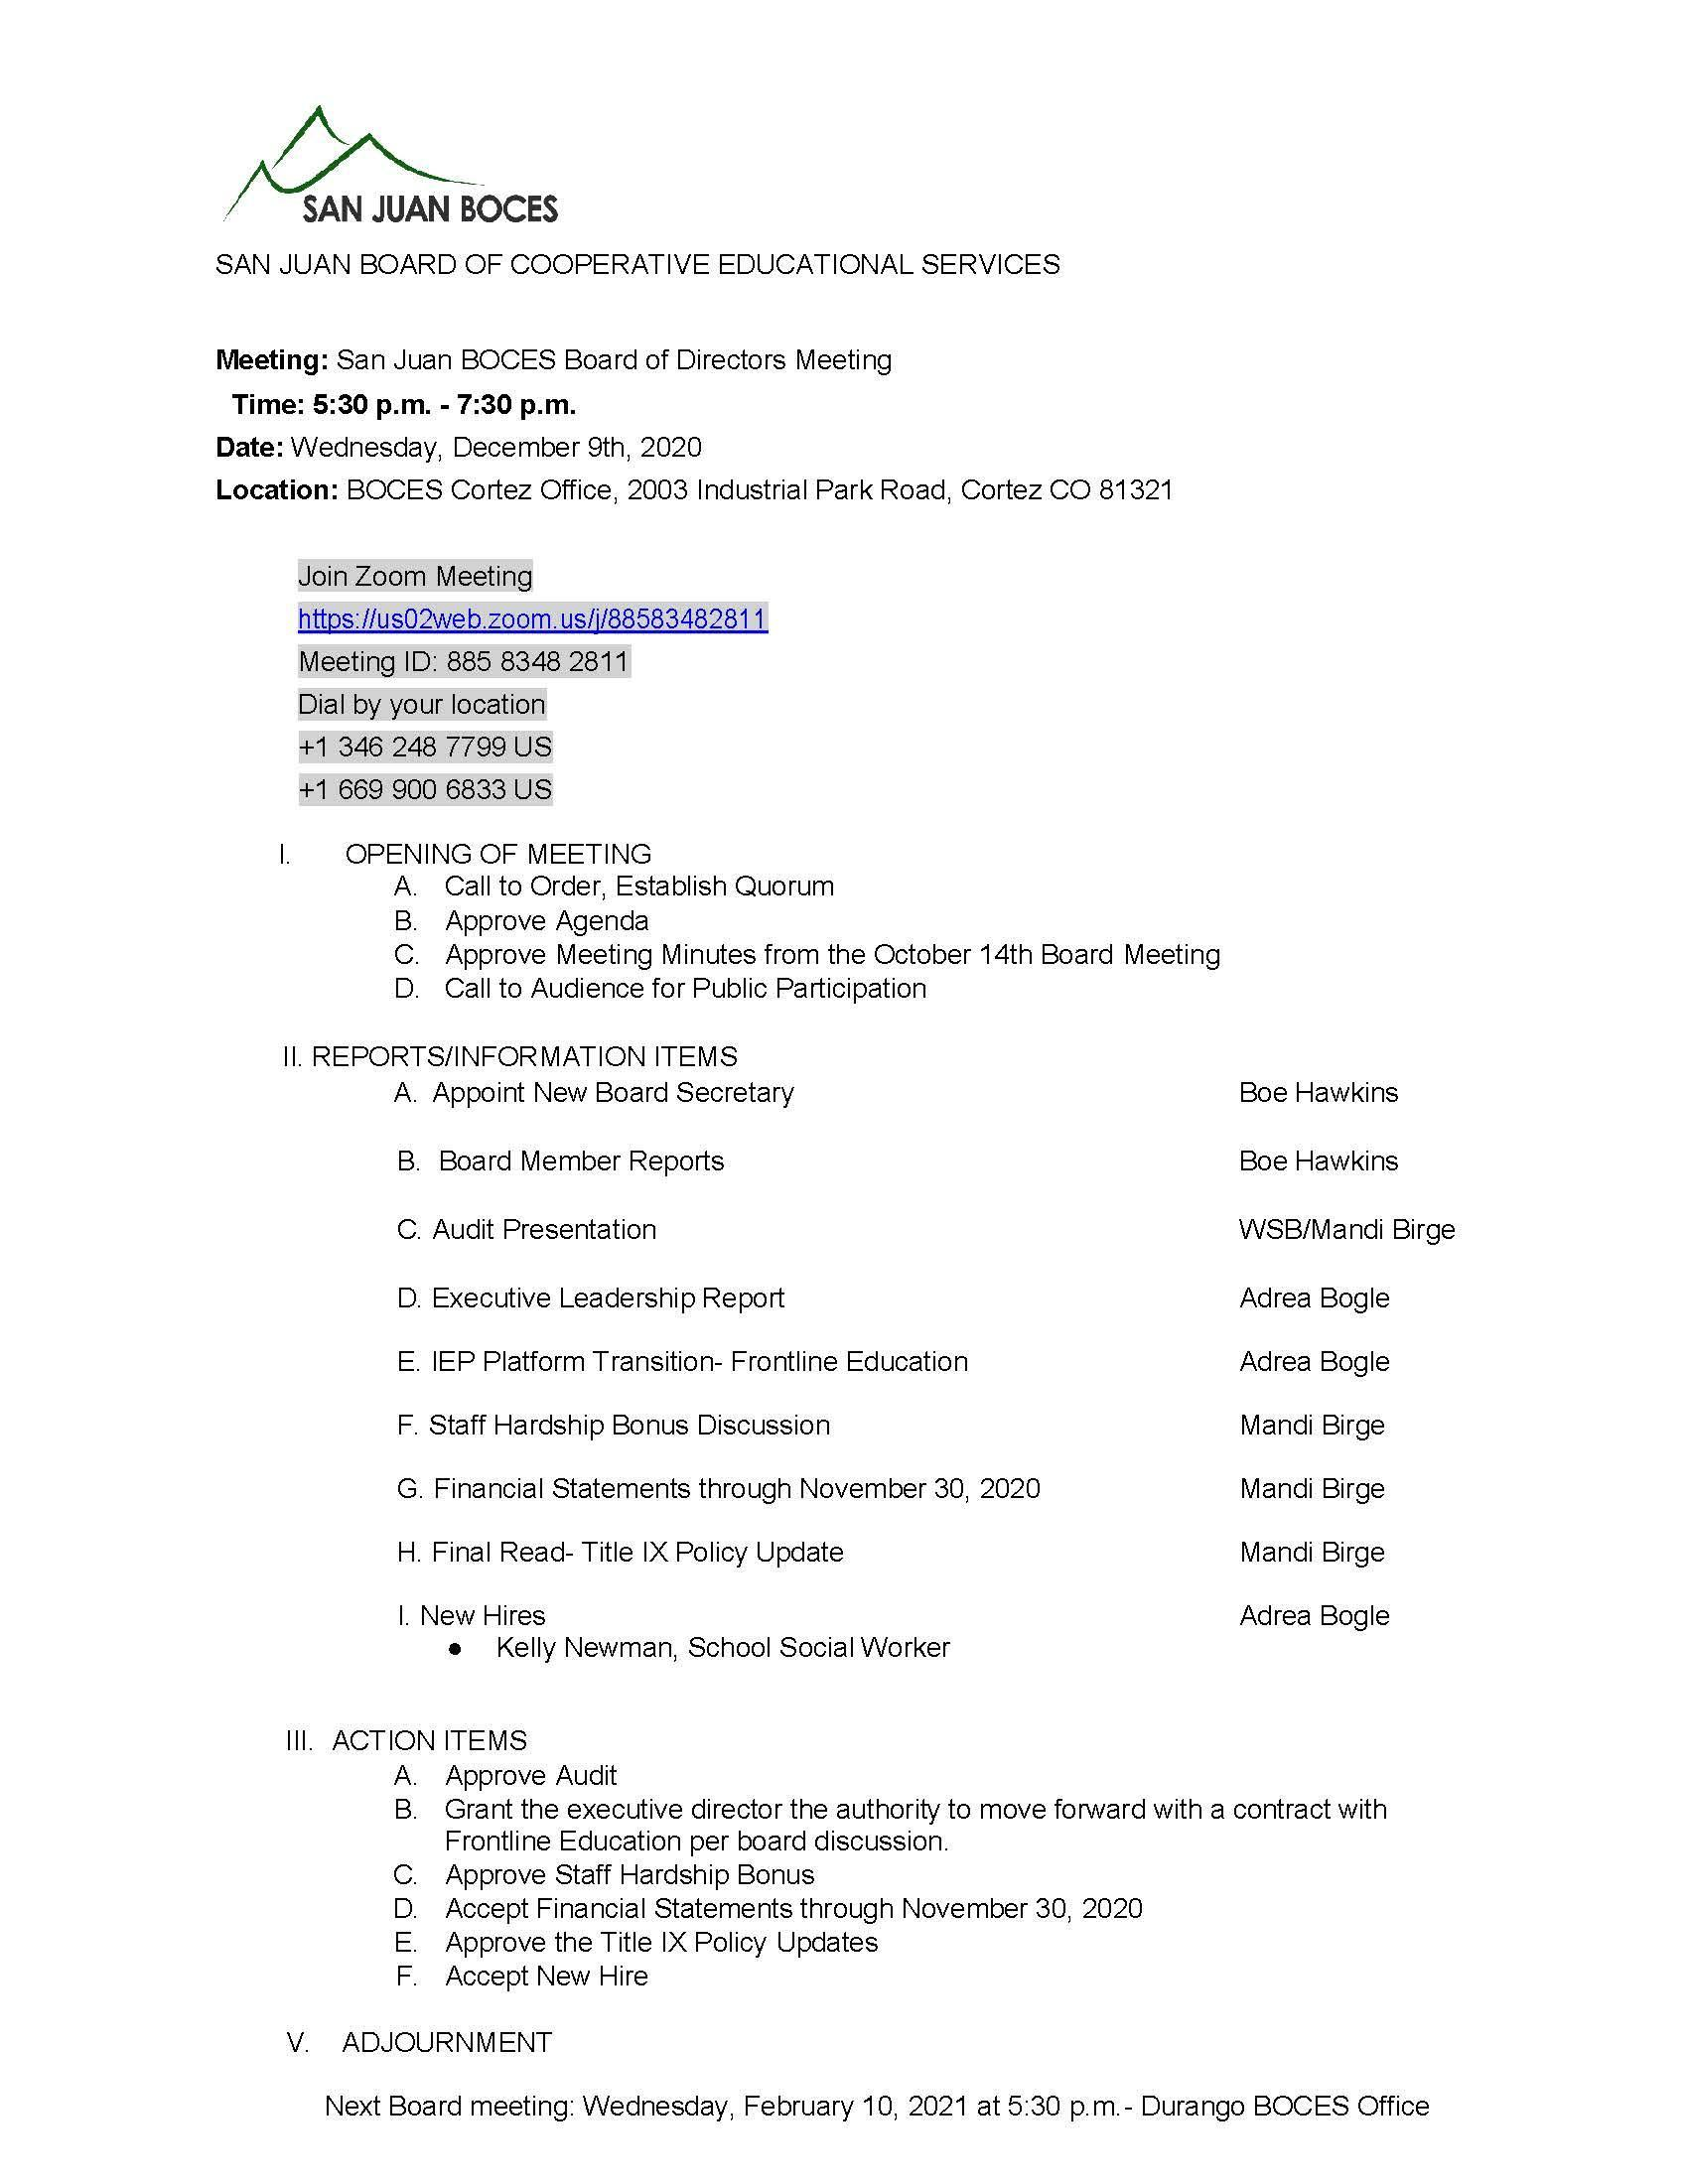 BOCES Board meeting Agenda for Wednesday December 9th, beginning at 5:30 pm. Remote Zoom meeting